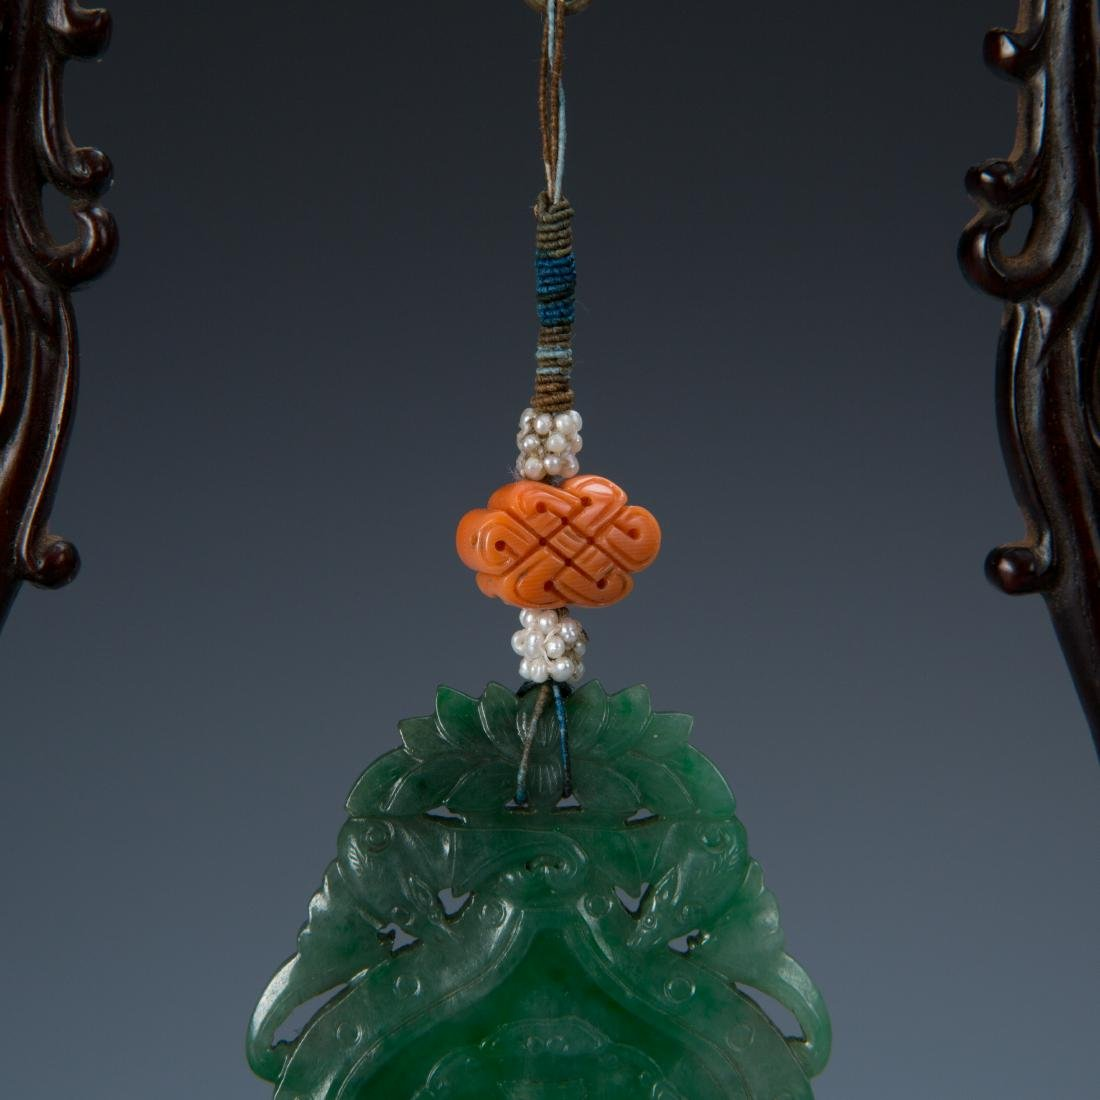 Double Gourd Jadeite Pendant with Coral and Pearl - 3